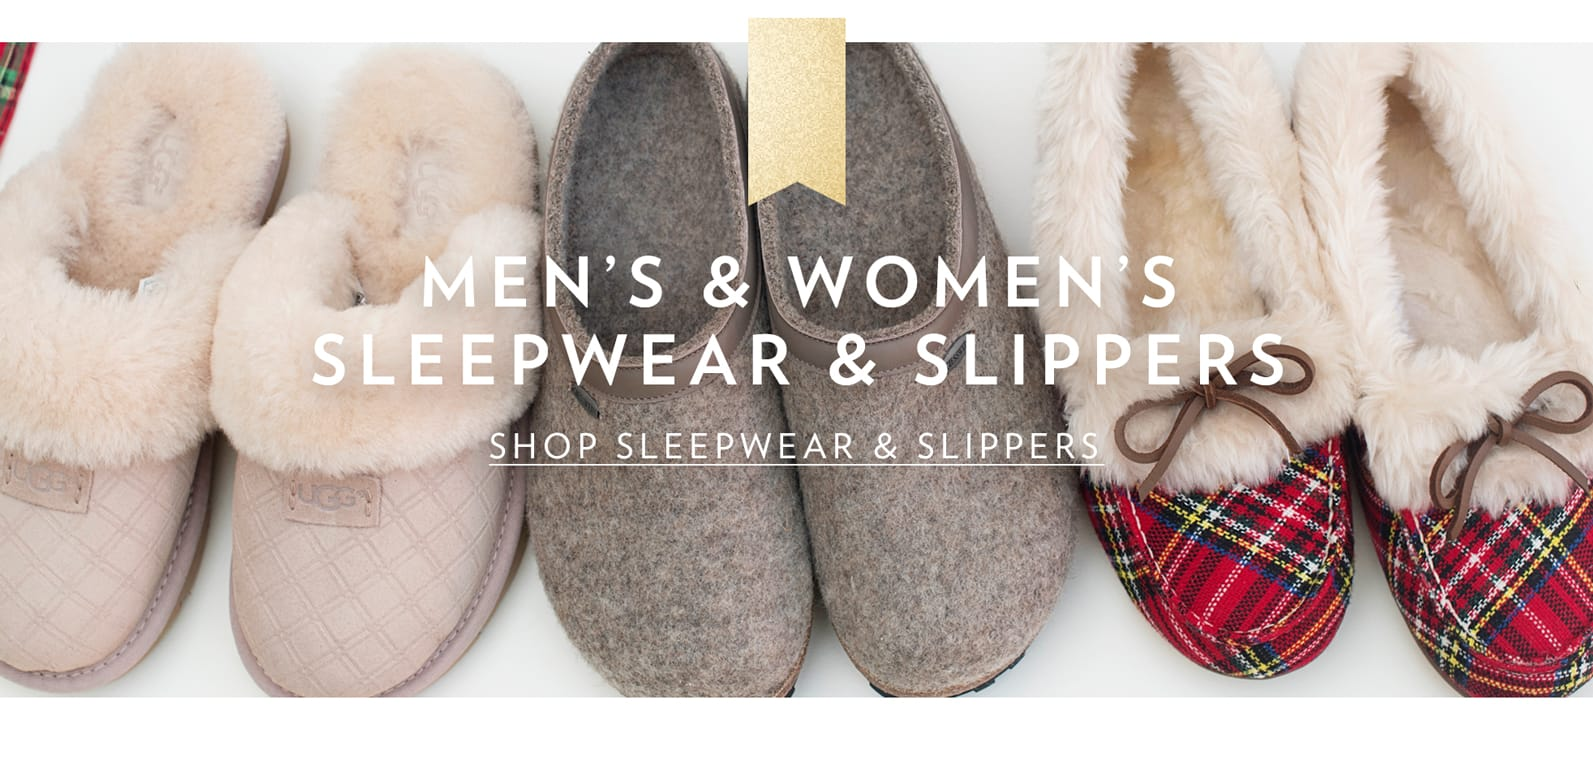 Shop Sleepwear & Slippers